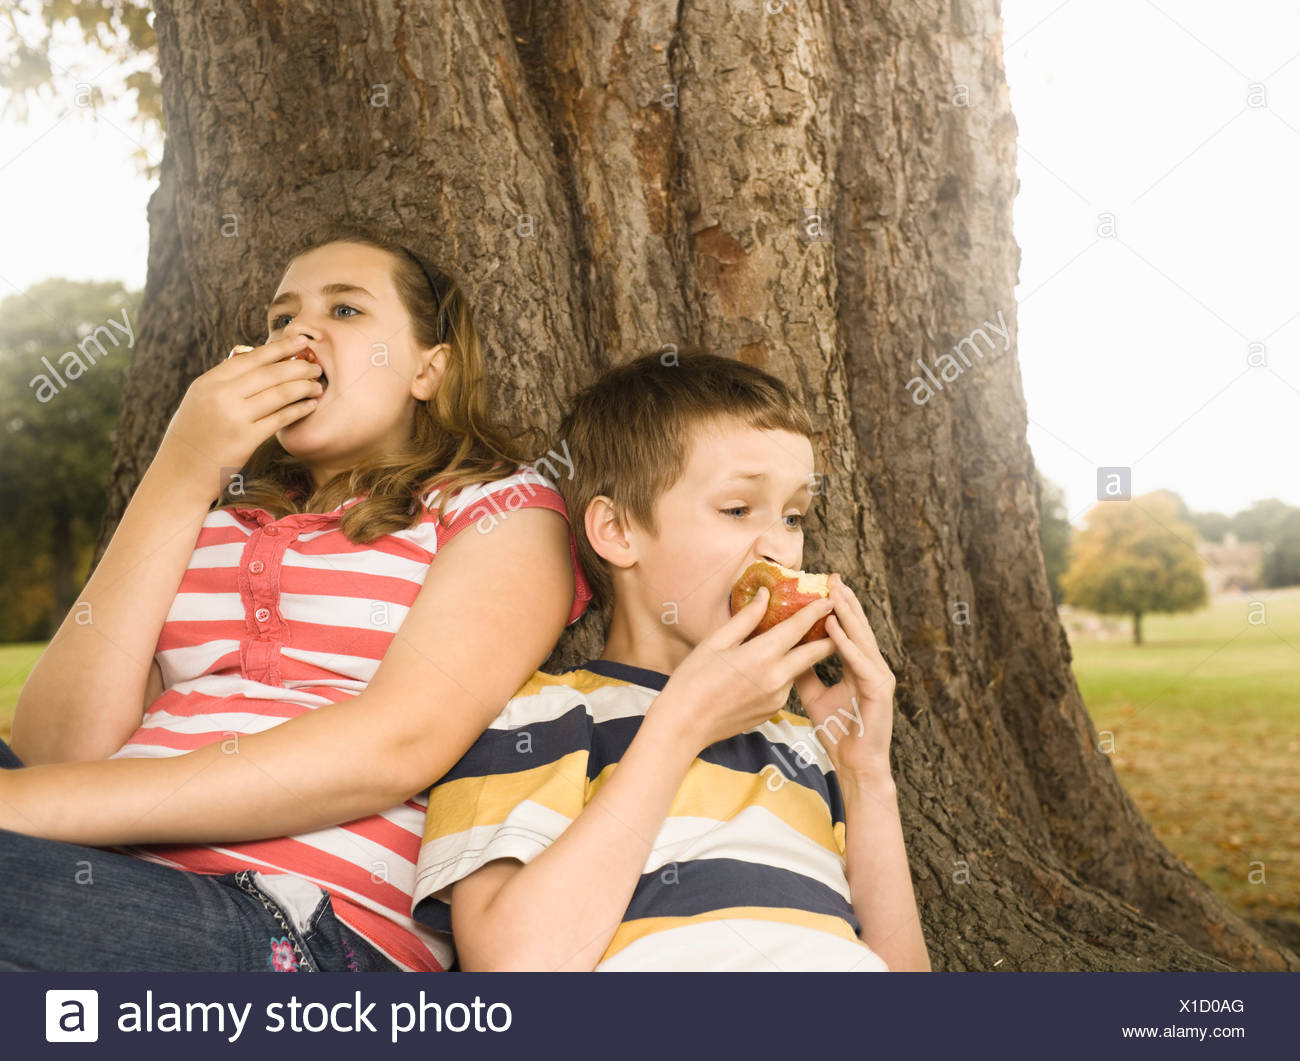 Boy and girl eating apples against tree - Stock Image